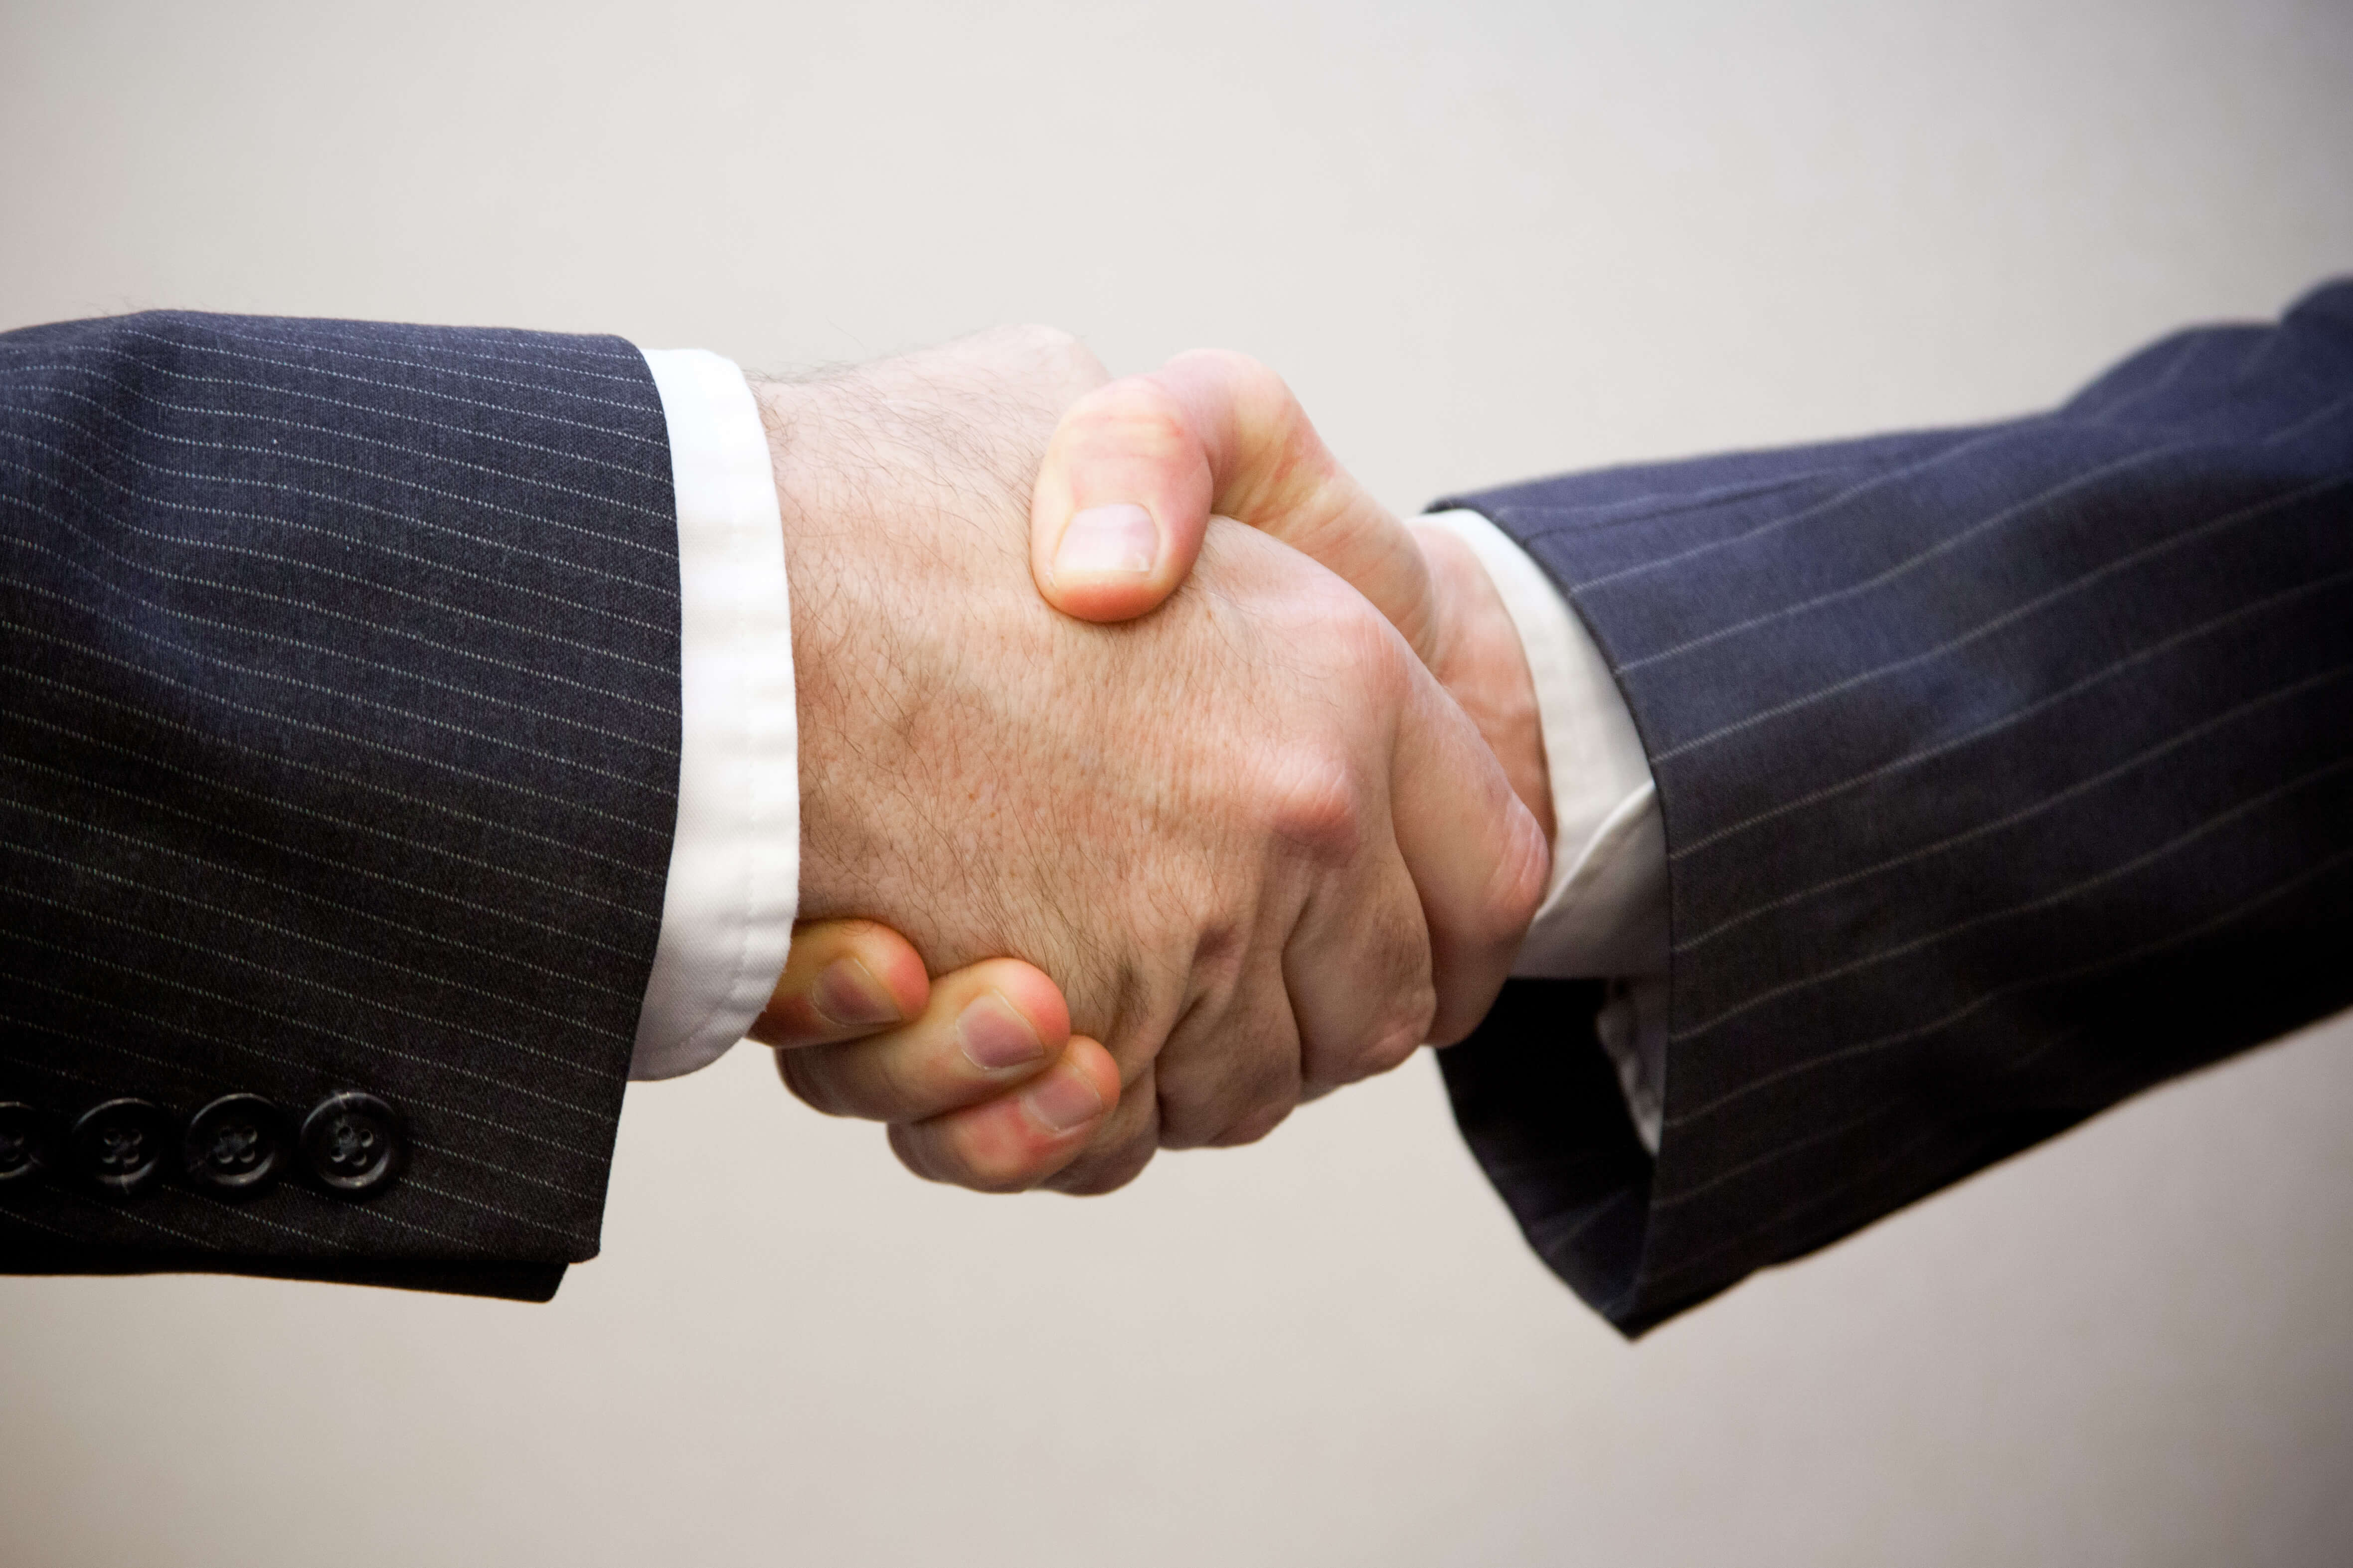 Why Should I Use An IBM Business Partner?